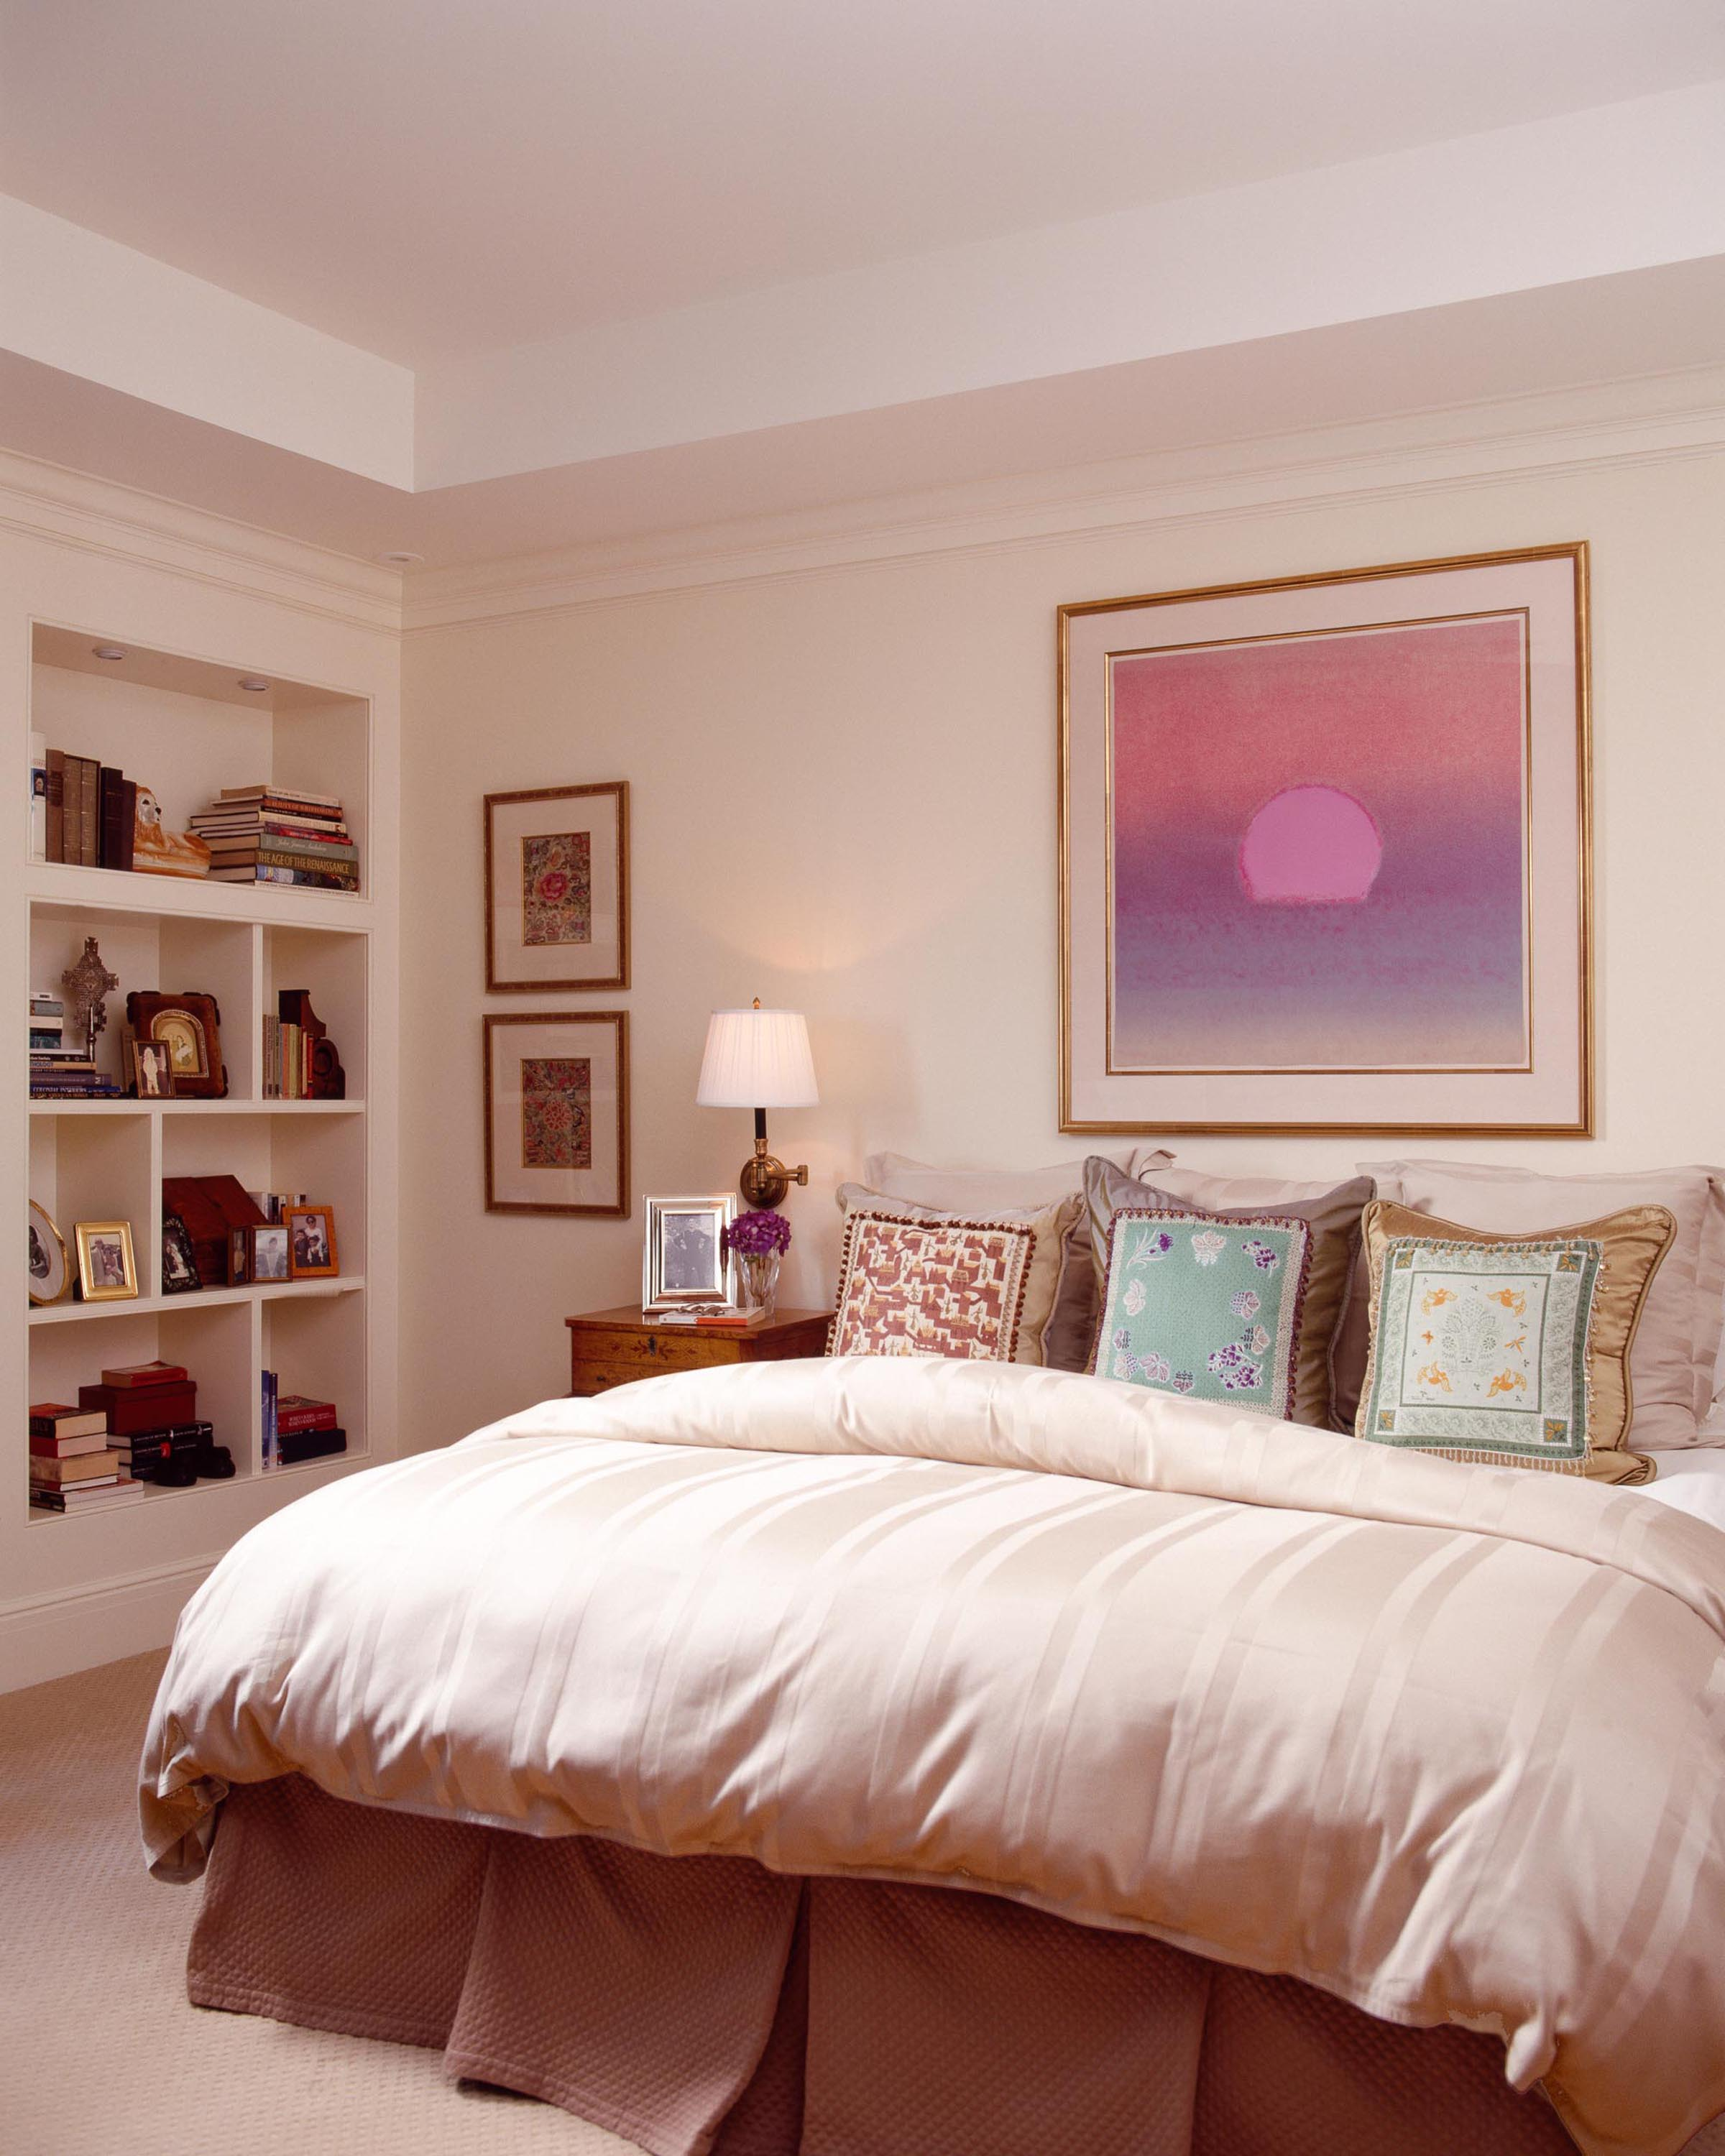 Bedroom with comfortable bed, frames on wall and white shelves with books